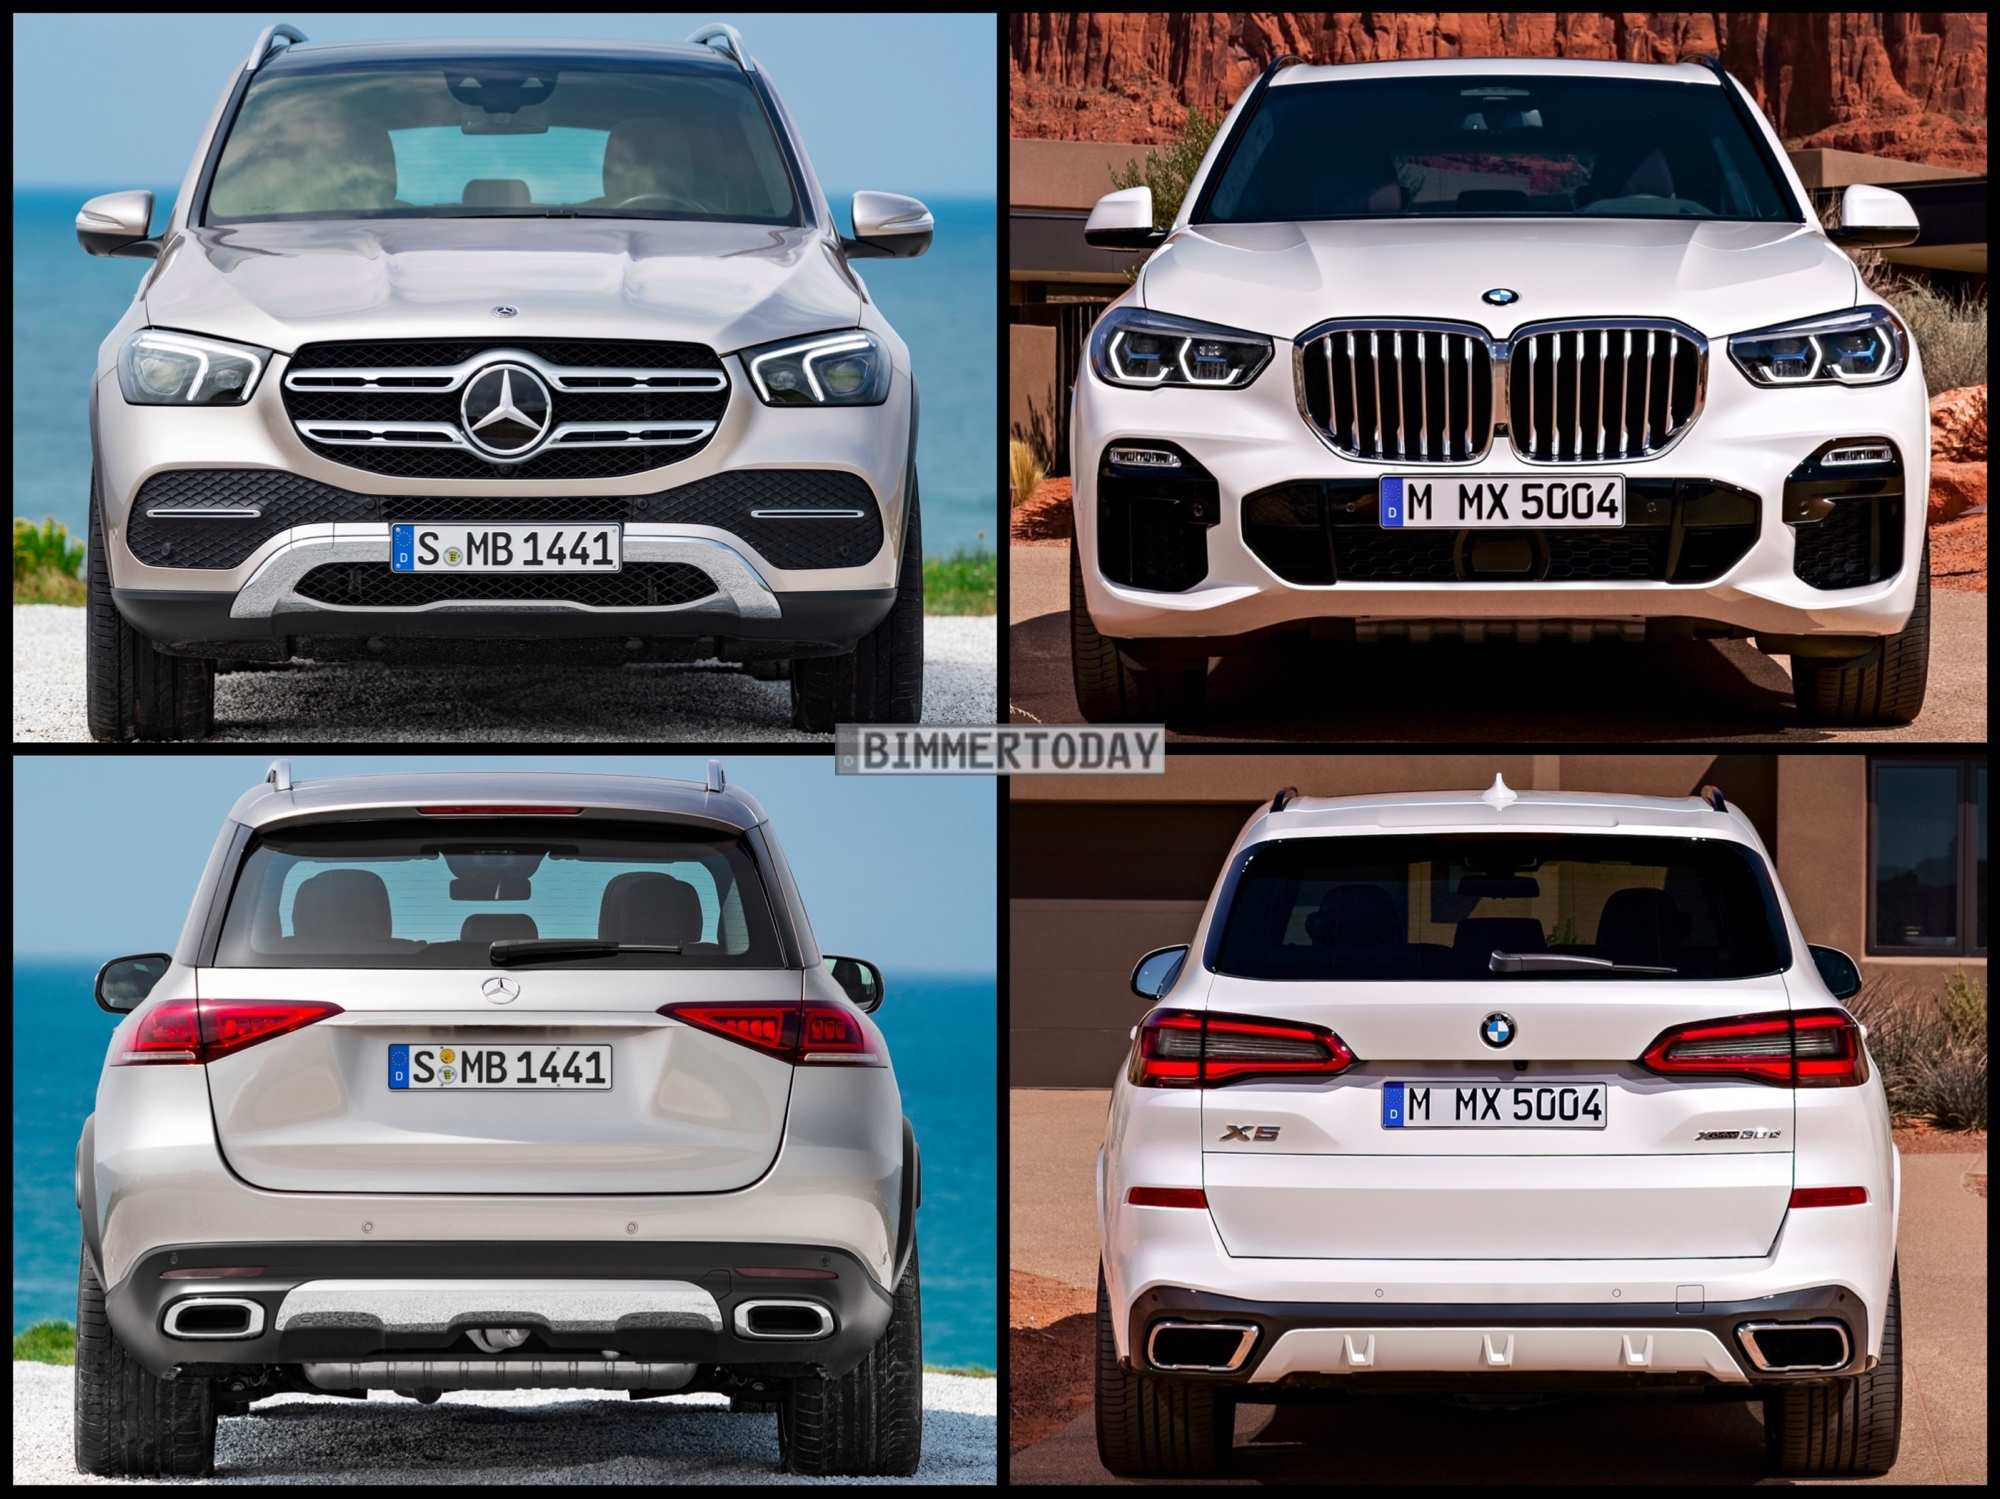 93 Best Review 2020 Mercedes Gle Vs BMW X5 Redesign and Concept for 2020 Mercedes Gle Vs BMW X5